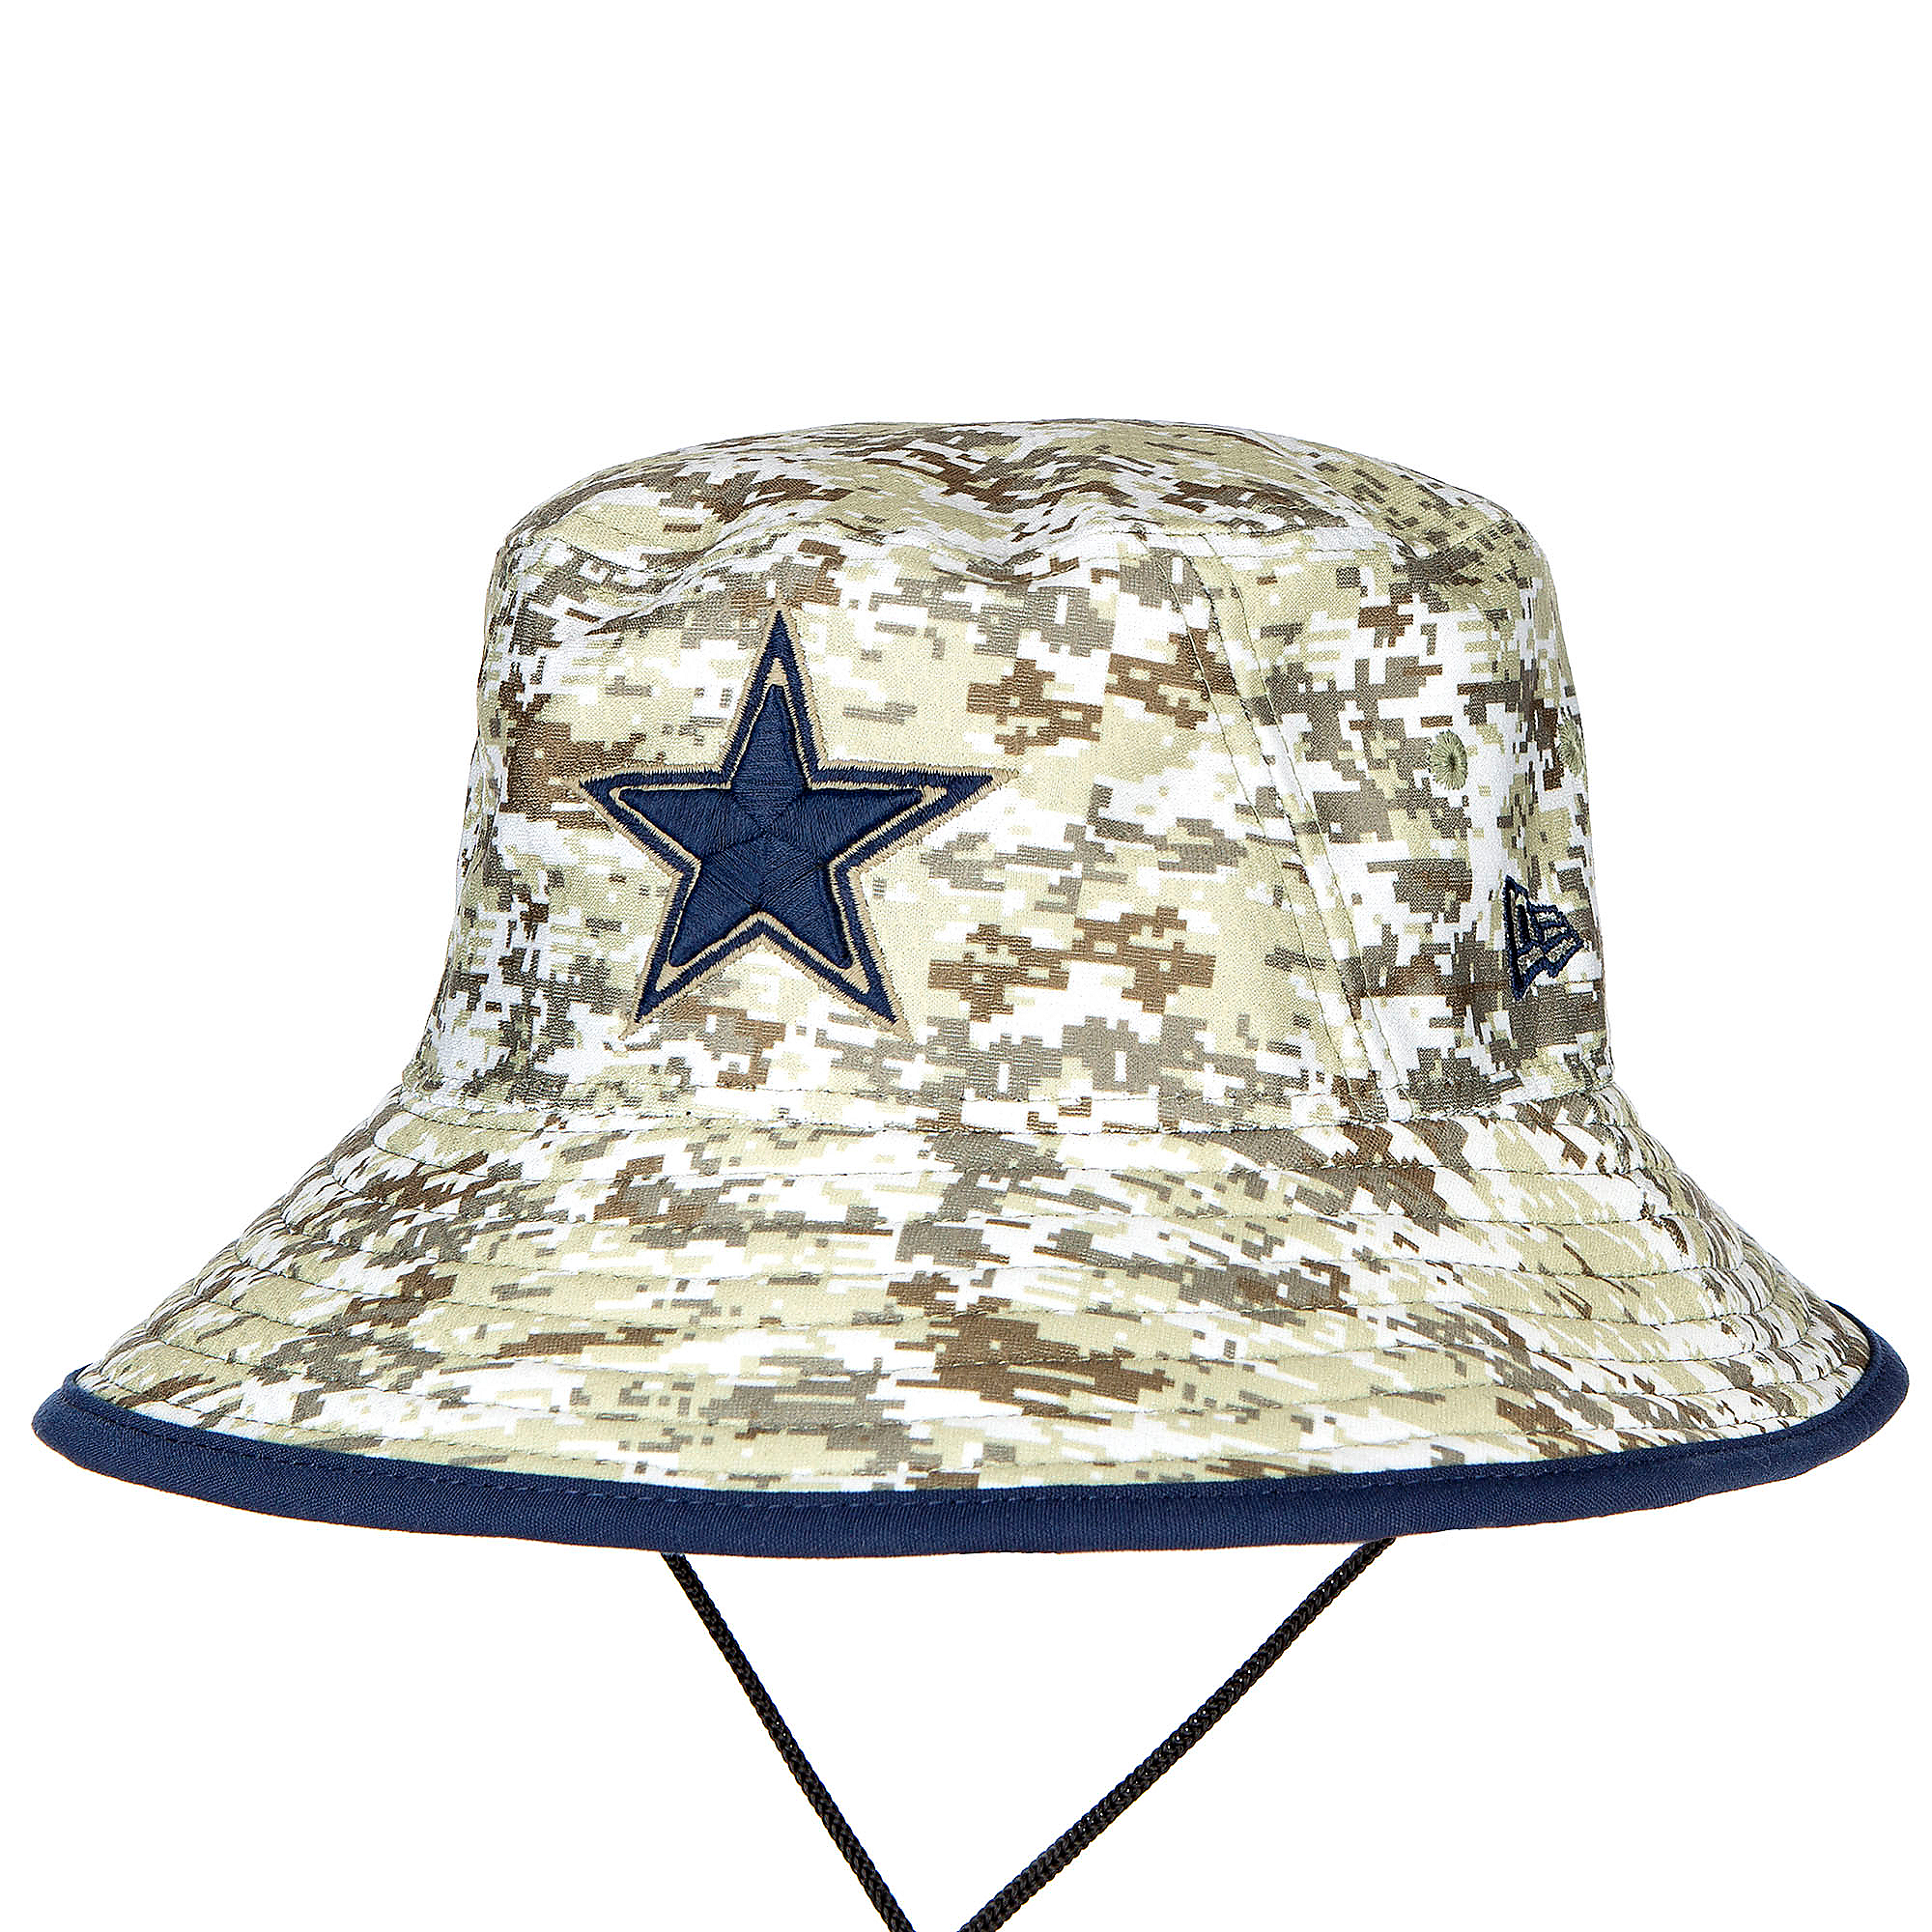 Dallas Cowboys New Era Salute to Service Digi Camo Bucket Hat ... ffffaa91fa6